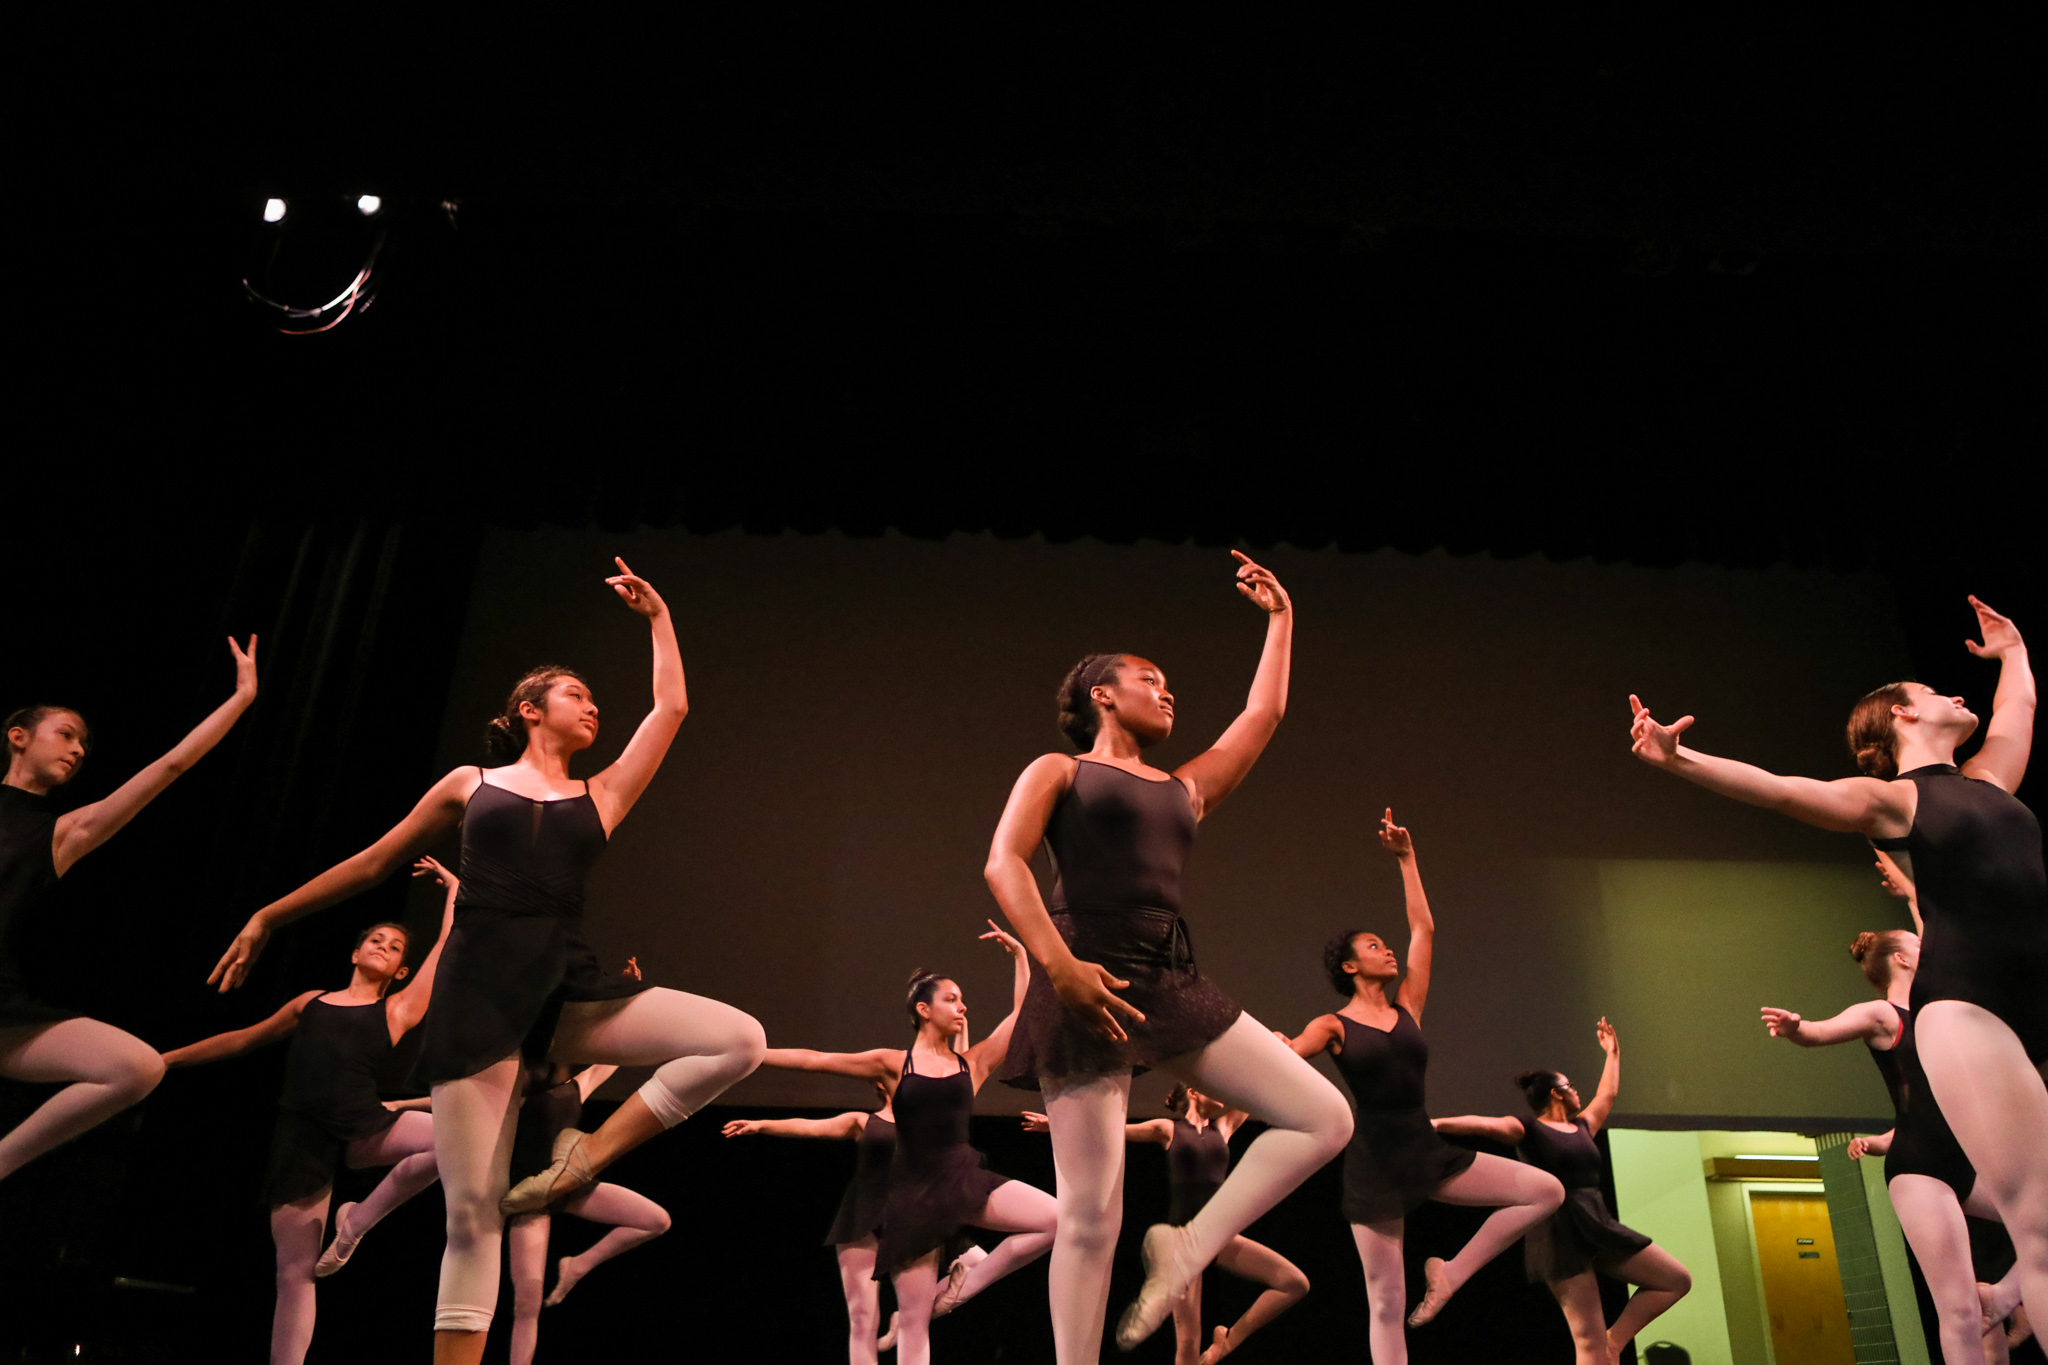 Dancers practice for their final performance at the Carver's Summer Dance Intensive Program taught by Dallas Black Dance Theatre professional dancers.